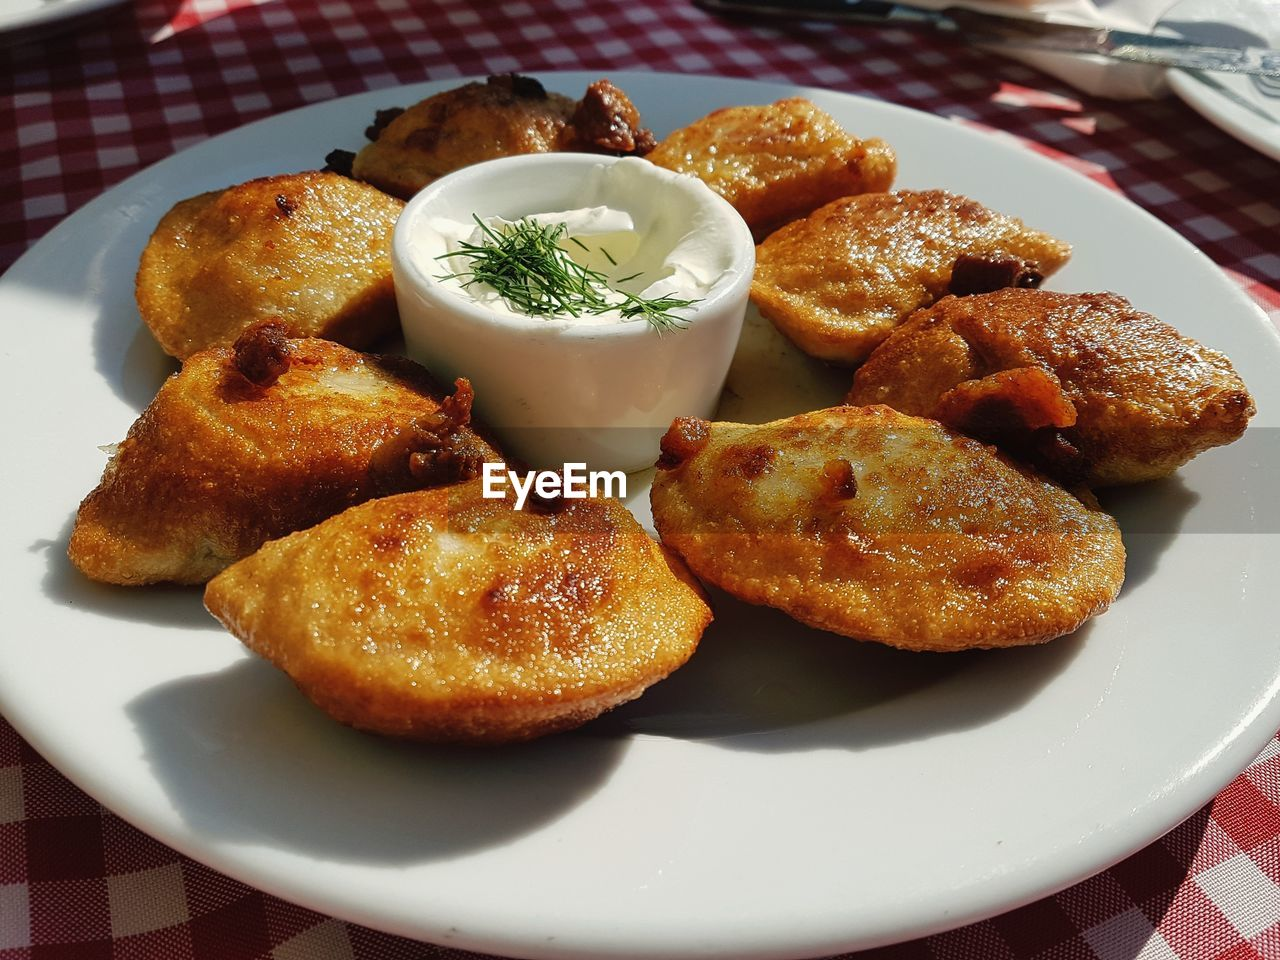 food and drink, food, ready-to-eat, plate, serving size, fried, freshness, indoors, close-up, appetizer, still life, no people, table, deep fried, meat, healthy eating, indulgence, snack, high angle view, dip, savory sauce, garnish, temptation, fried chicken